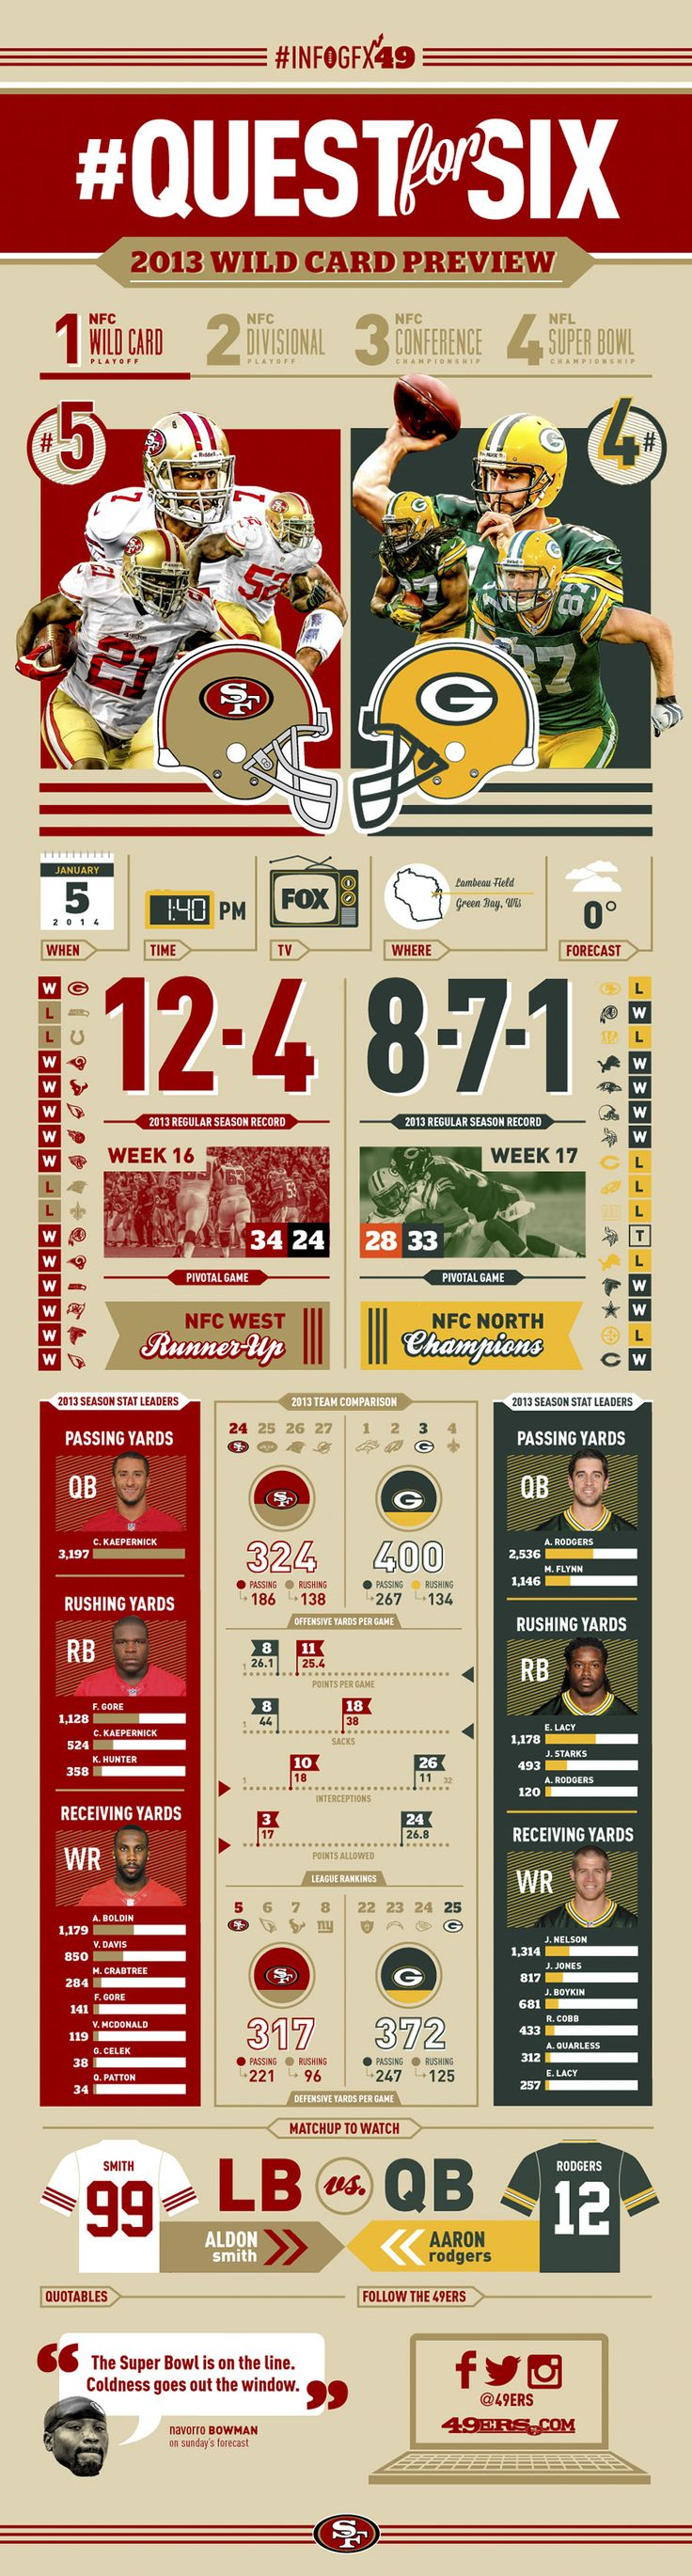 www.49ers.com Infographic 2013 Wild-Card-Preview BEAT THE PACKERS!!!